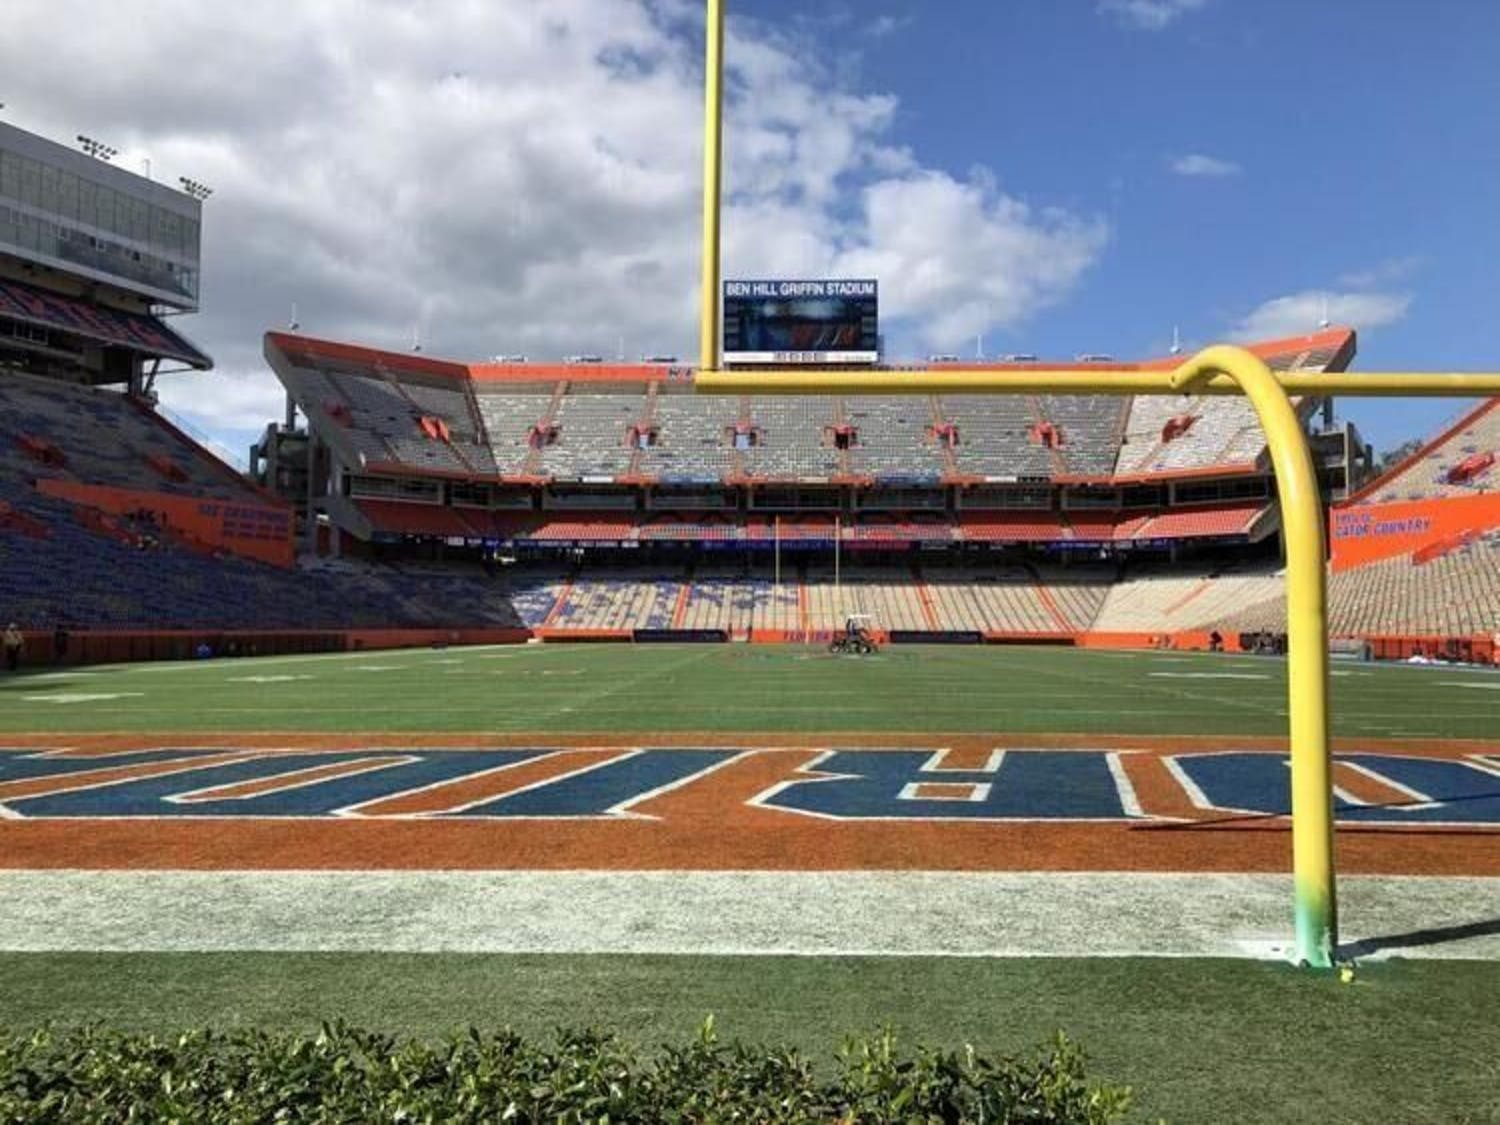 The University Police Department will not be in charge of social distancing when Florida plays South Carolina in its first home game at Ben Hill Griffin Stadium. Fans can use the Florida Gators app to report a social distancing violation in the stadium.